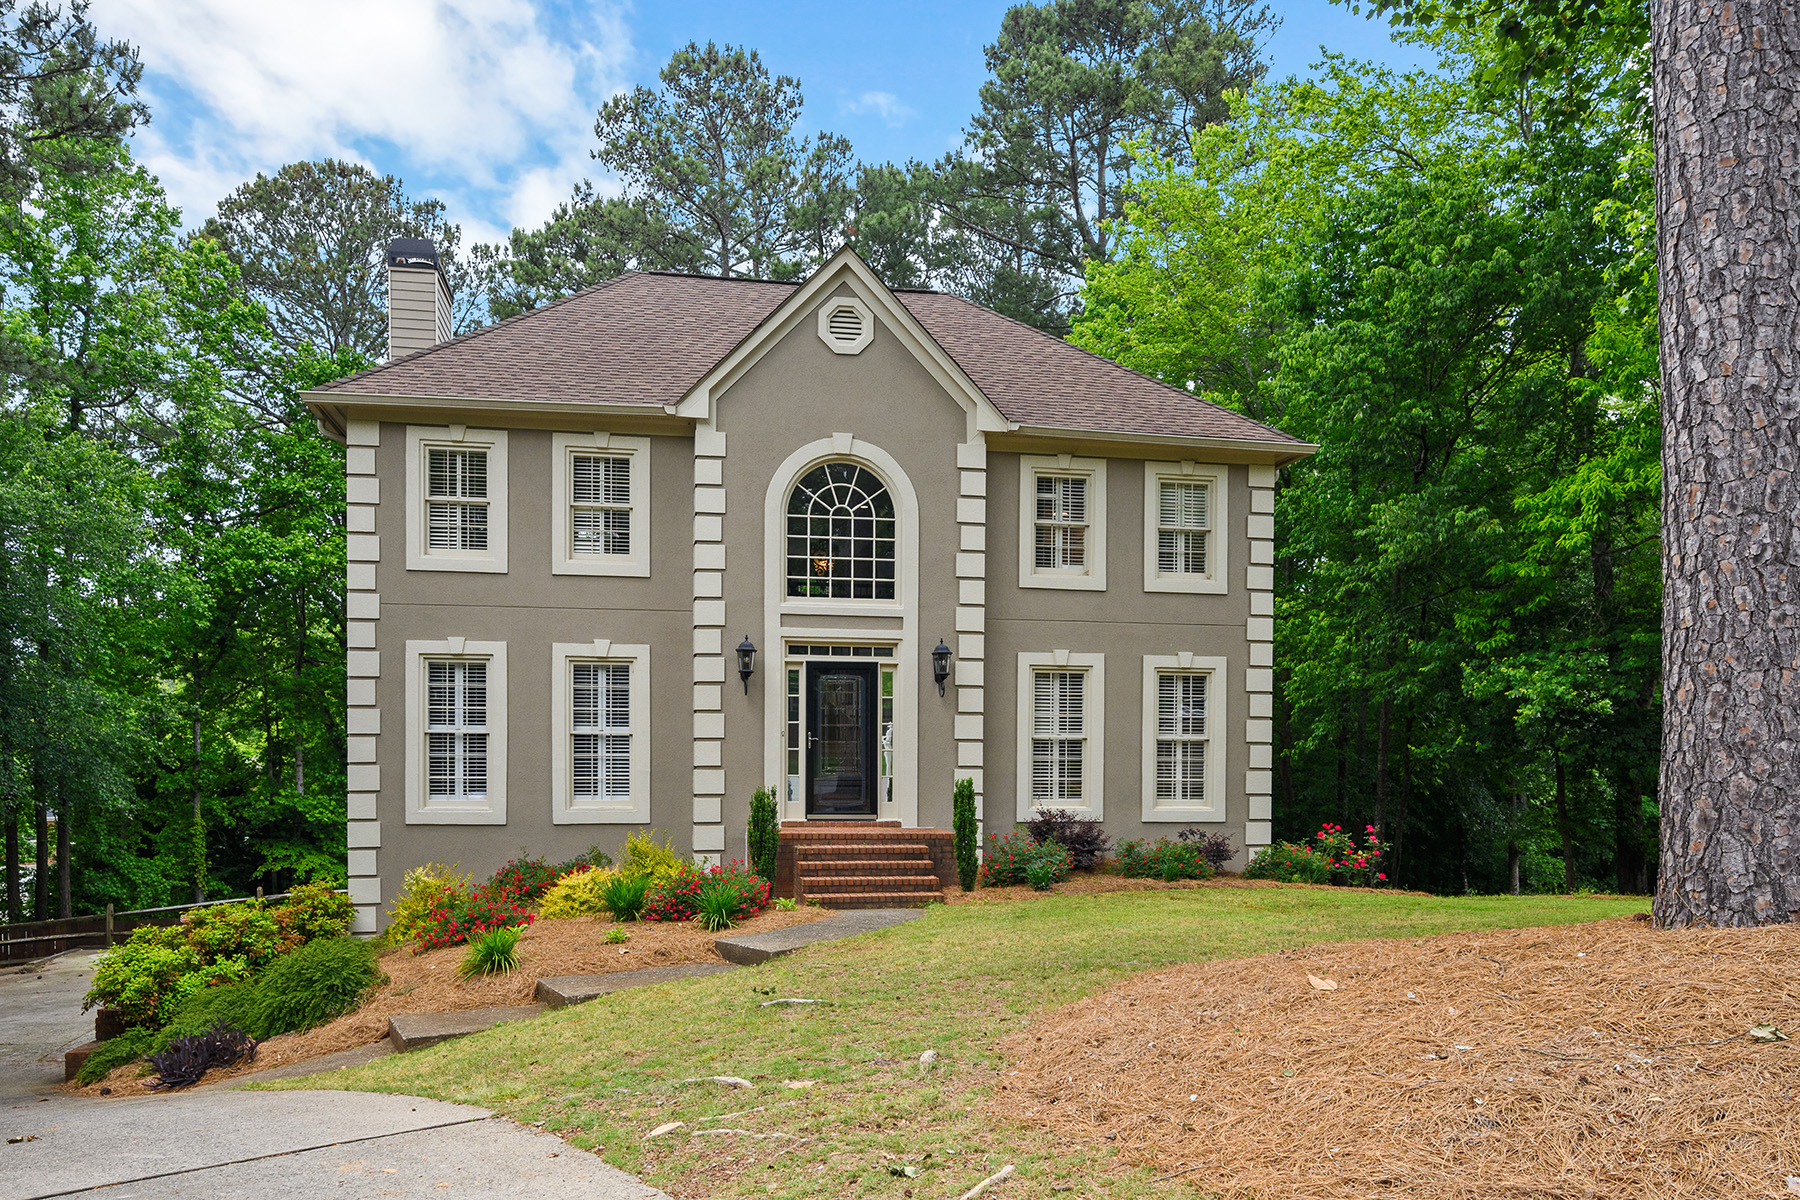 Single Family Homes for Sale at Ready To Move-In Home In Windward 435 Ridgewood Way Alpharetta, Georgia 30005 United States